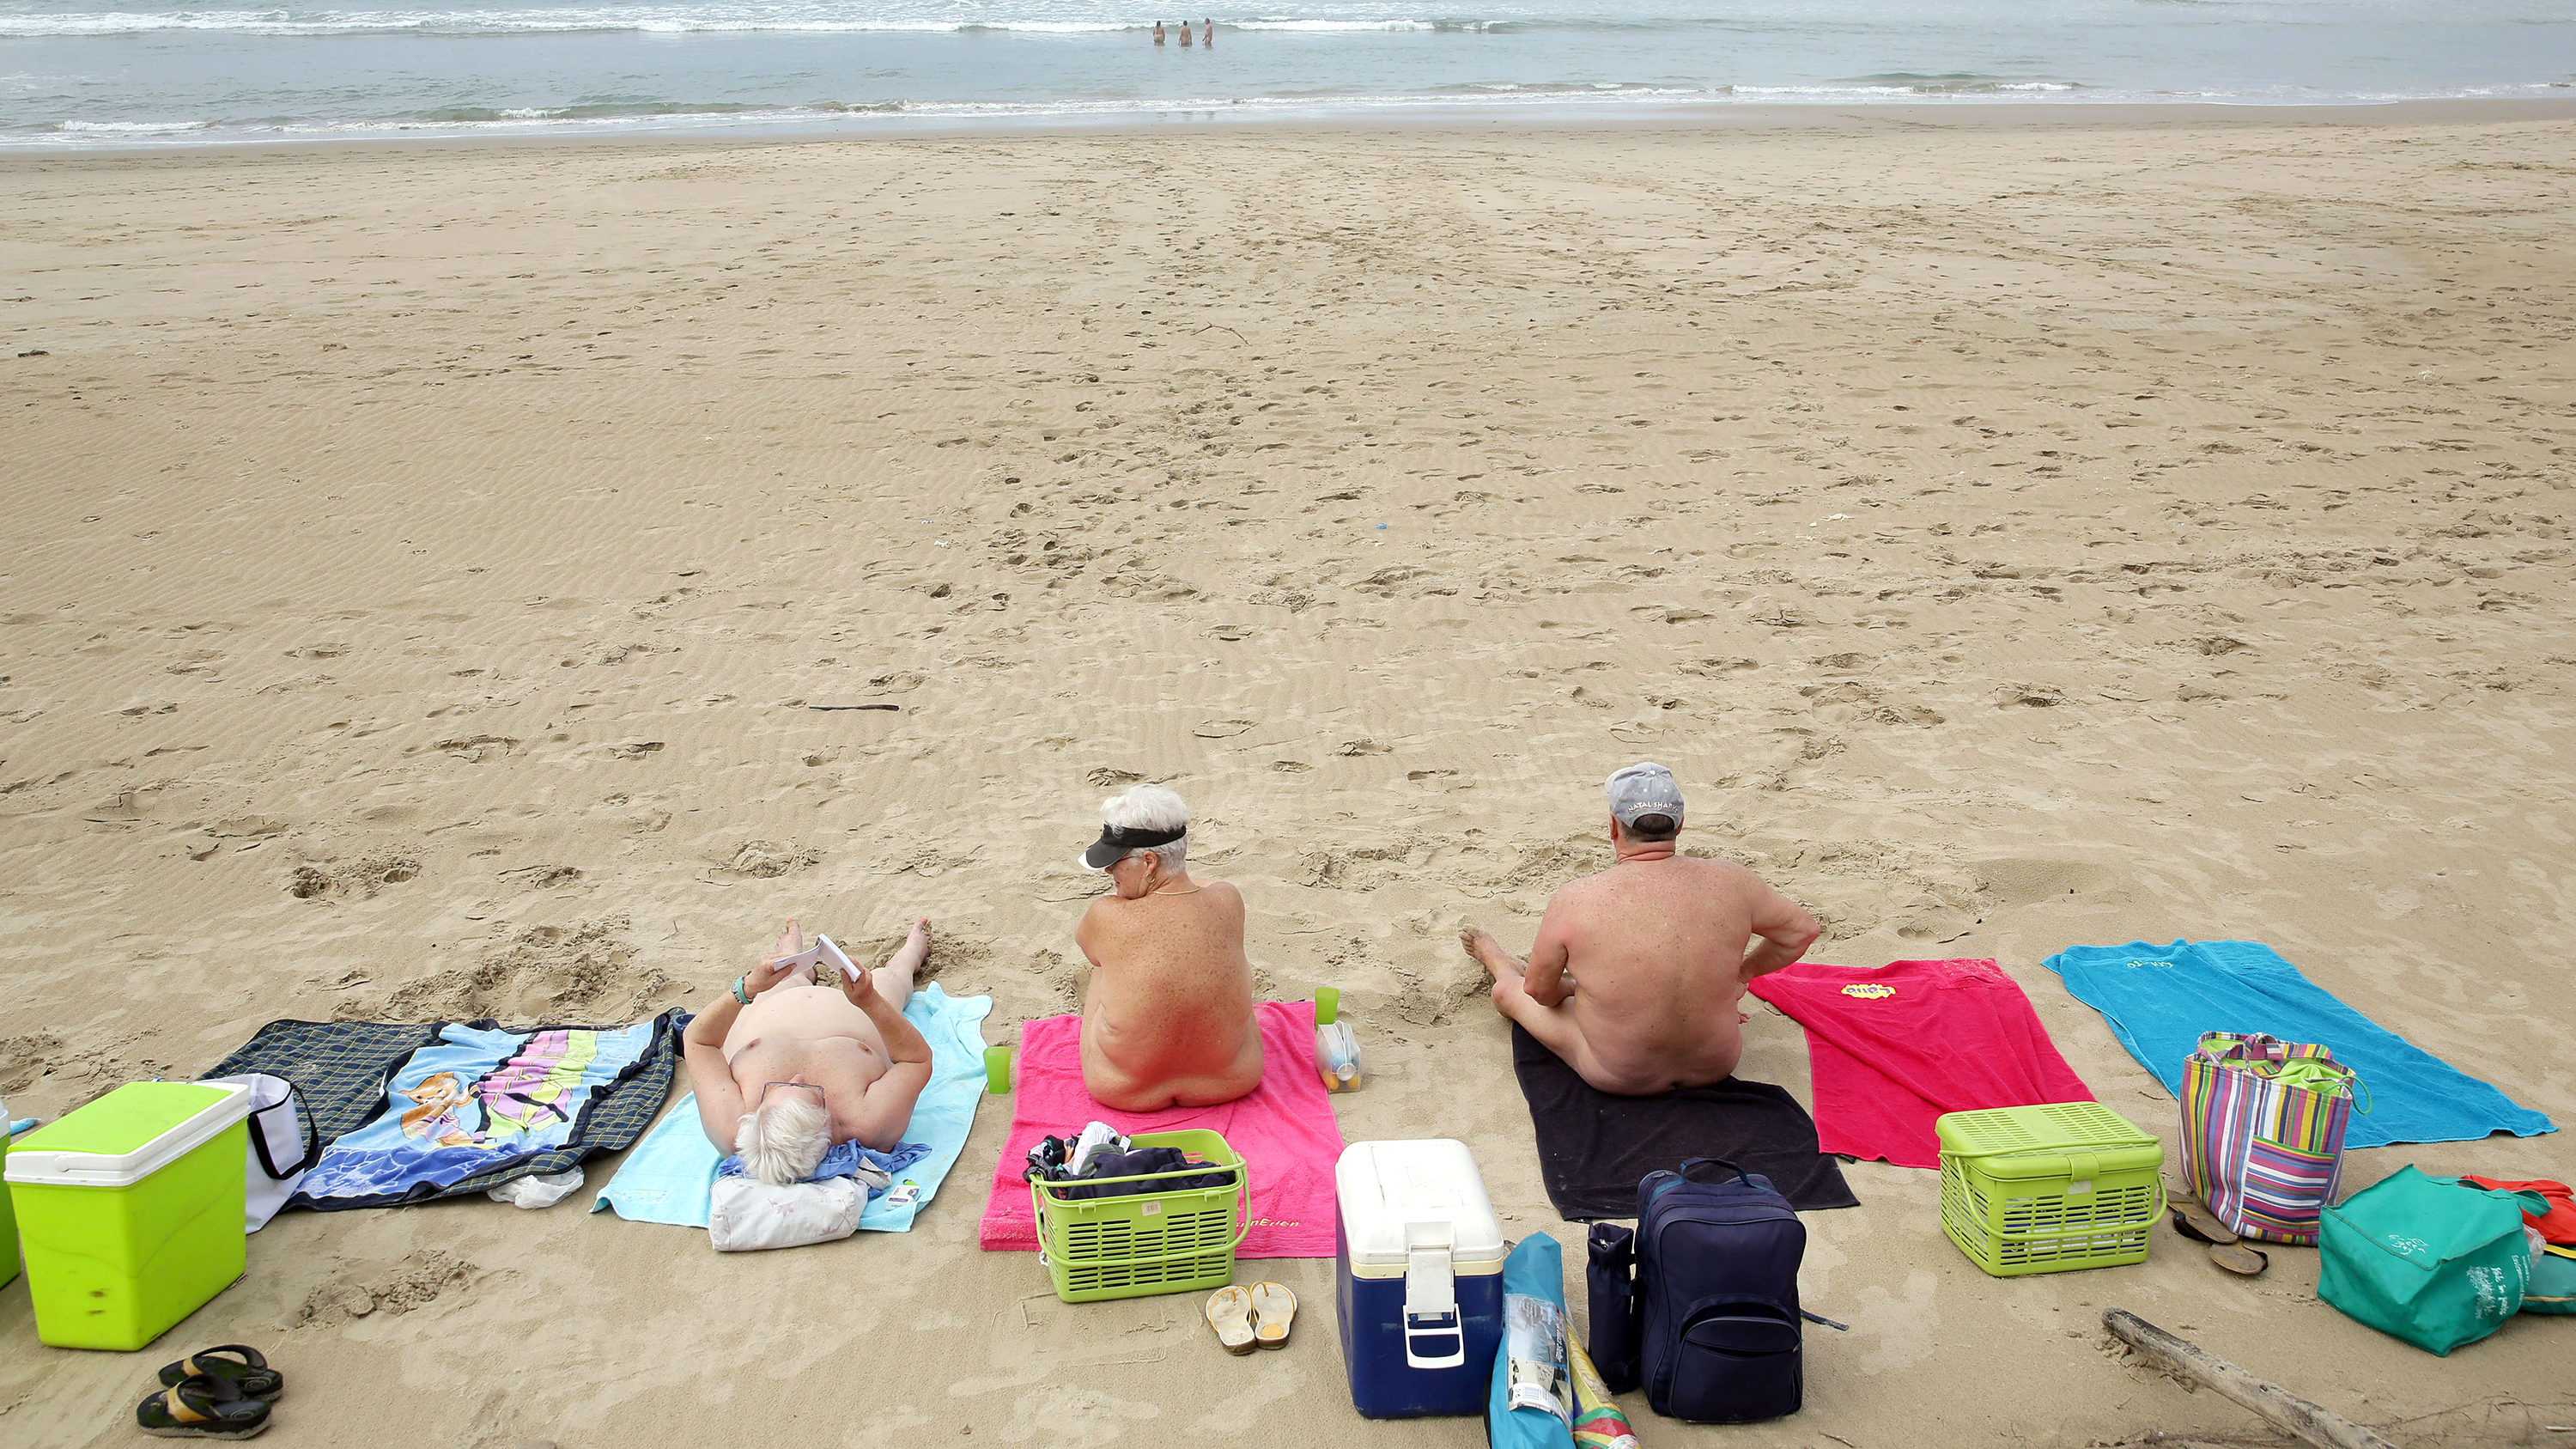 Naked pictures on the beach